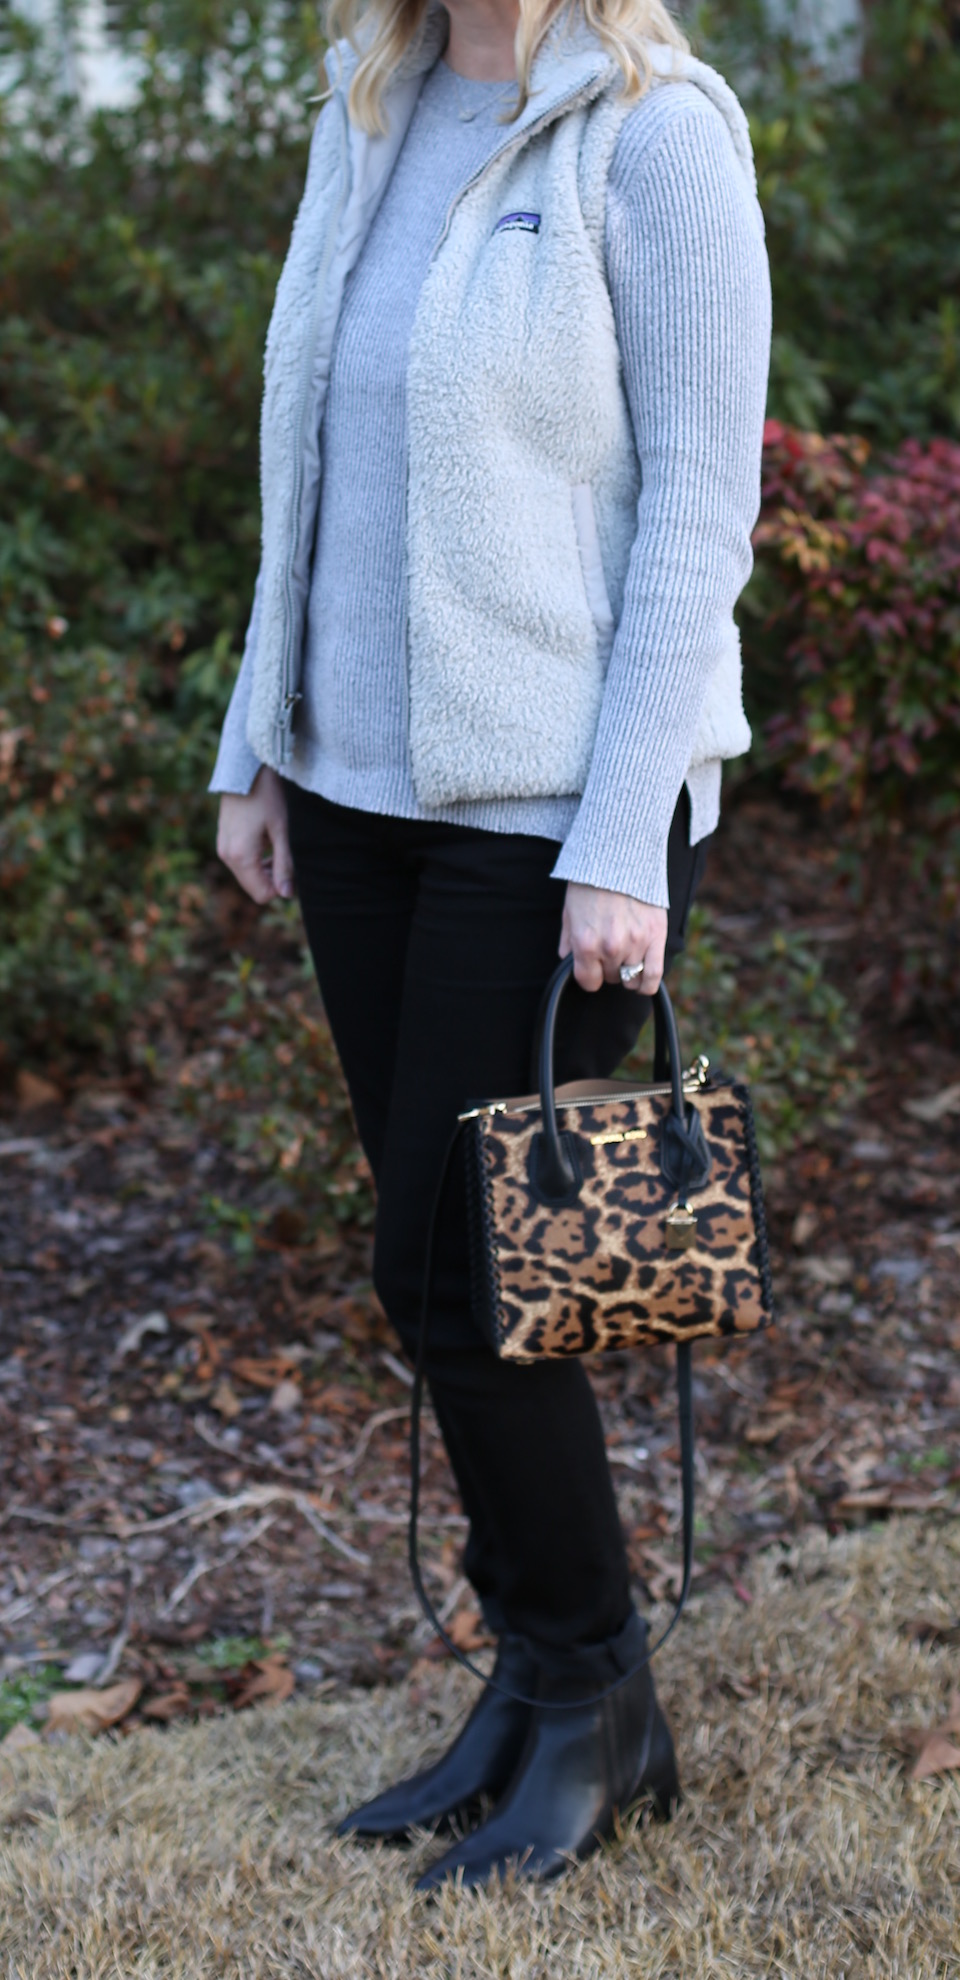 Black Gray and Leopard Outfit